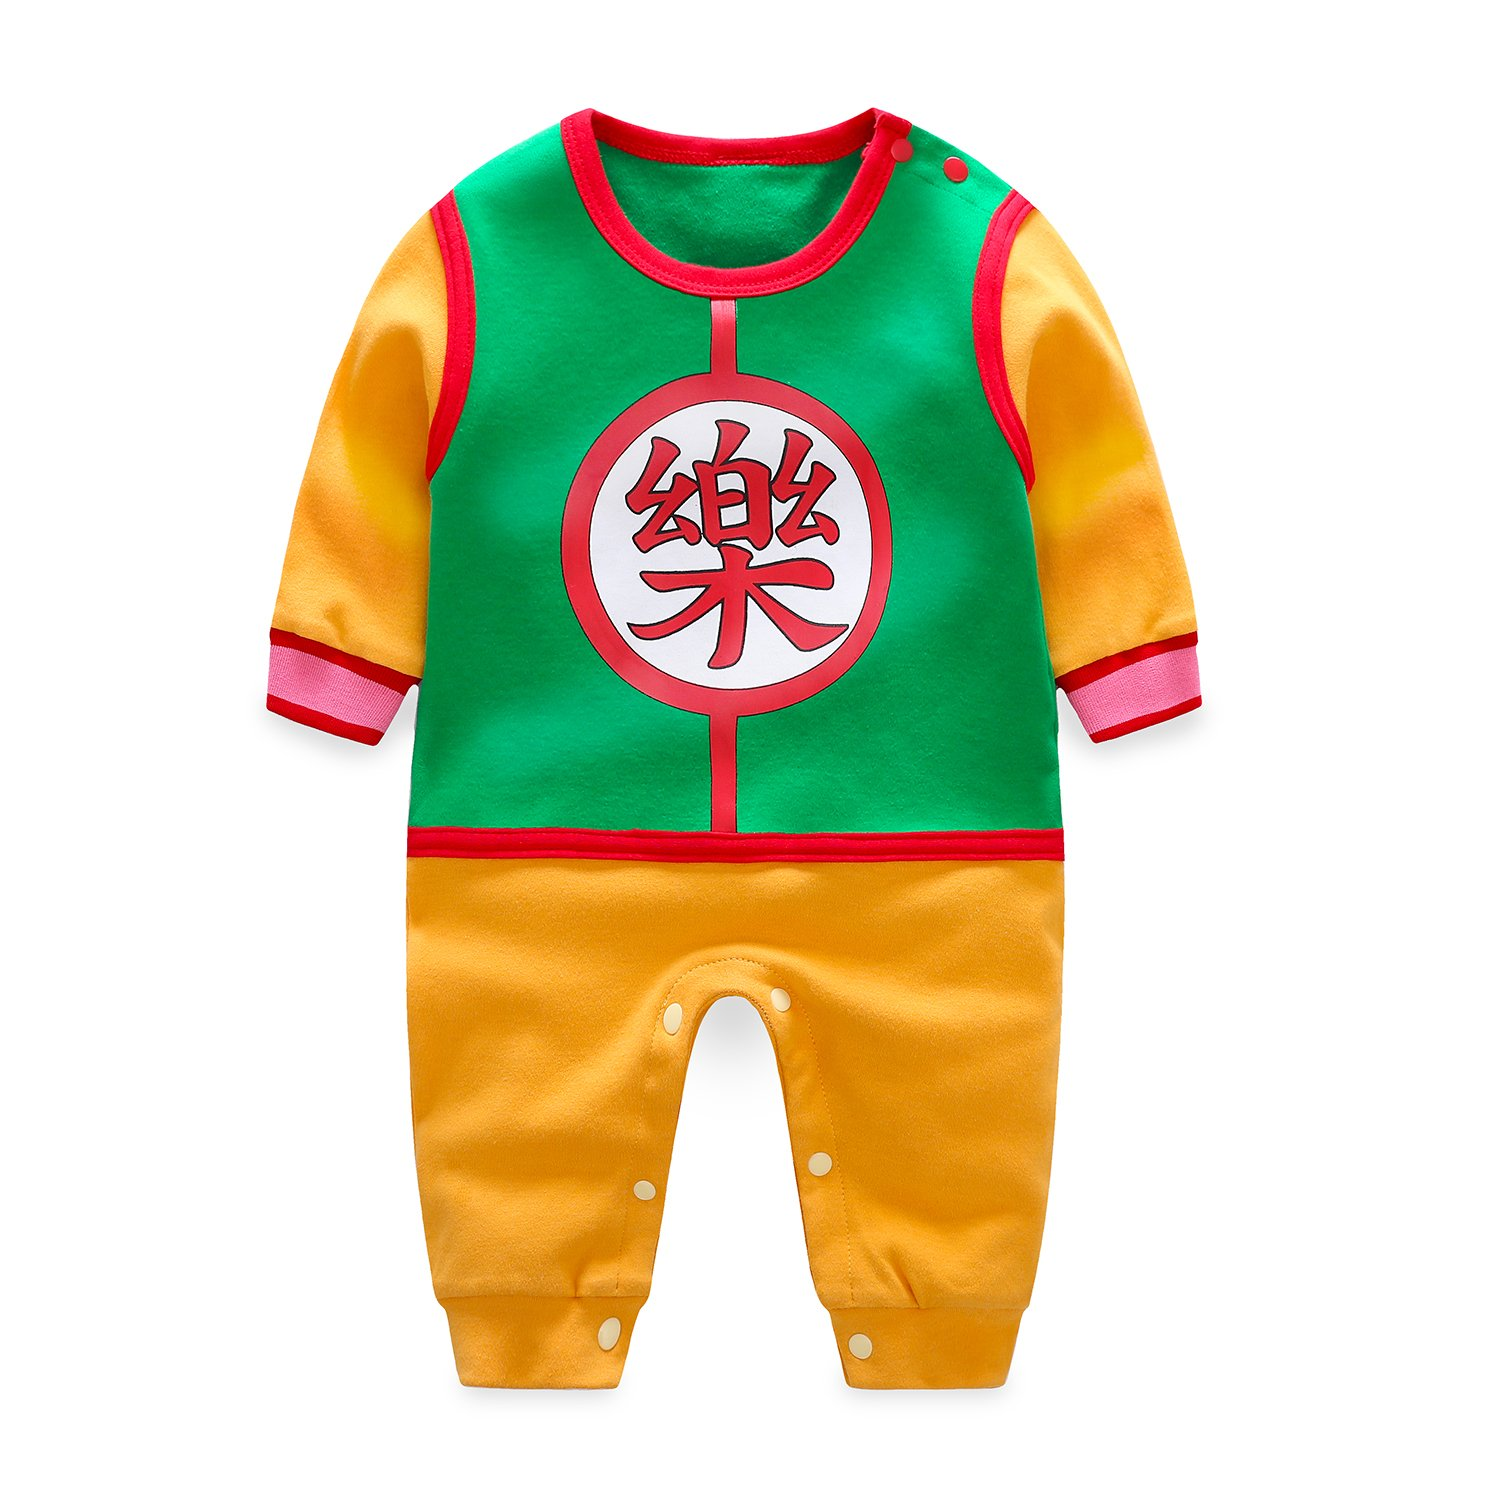 MomentDAY Toddler Infant Newborn Baby Boy Girl Cartoon Duck Cotton Romper Bodysuit Jumpsuit Outfit Clothes Onesies 0-2Y